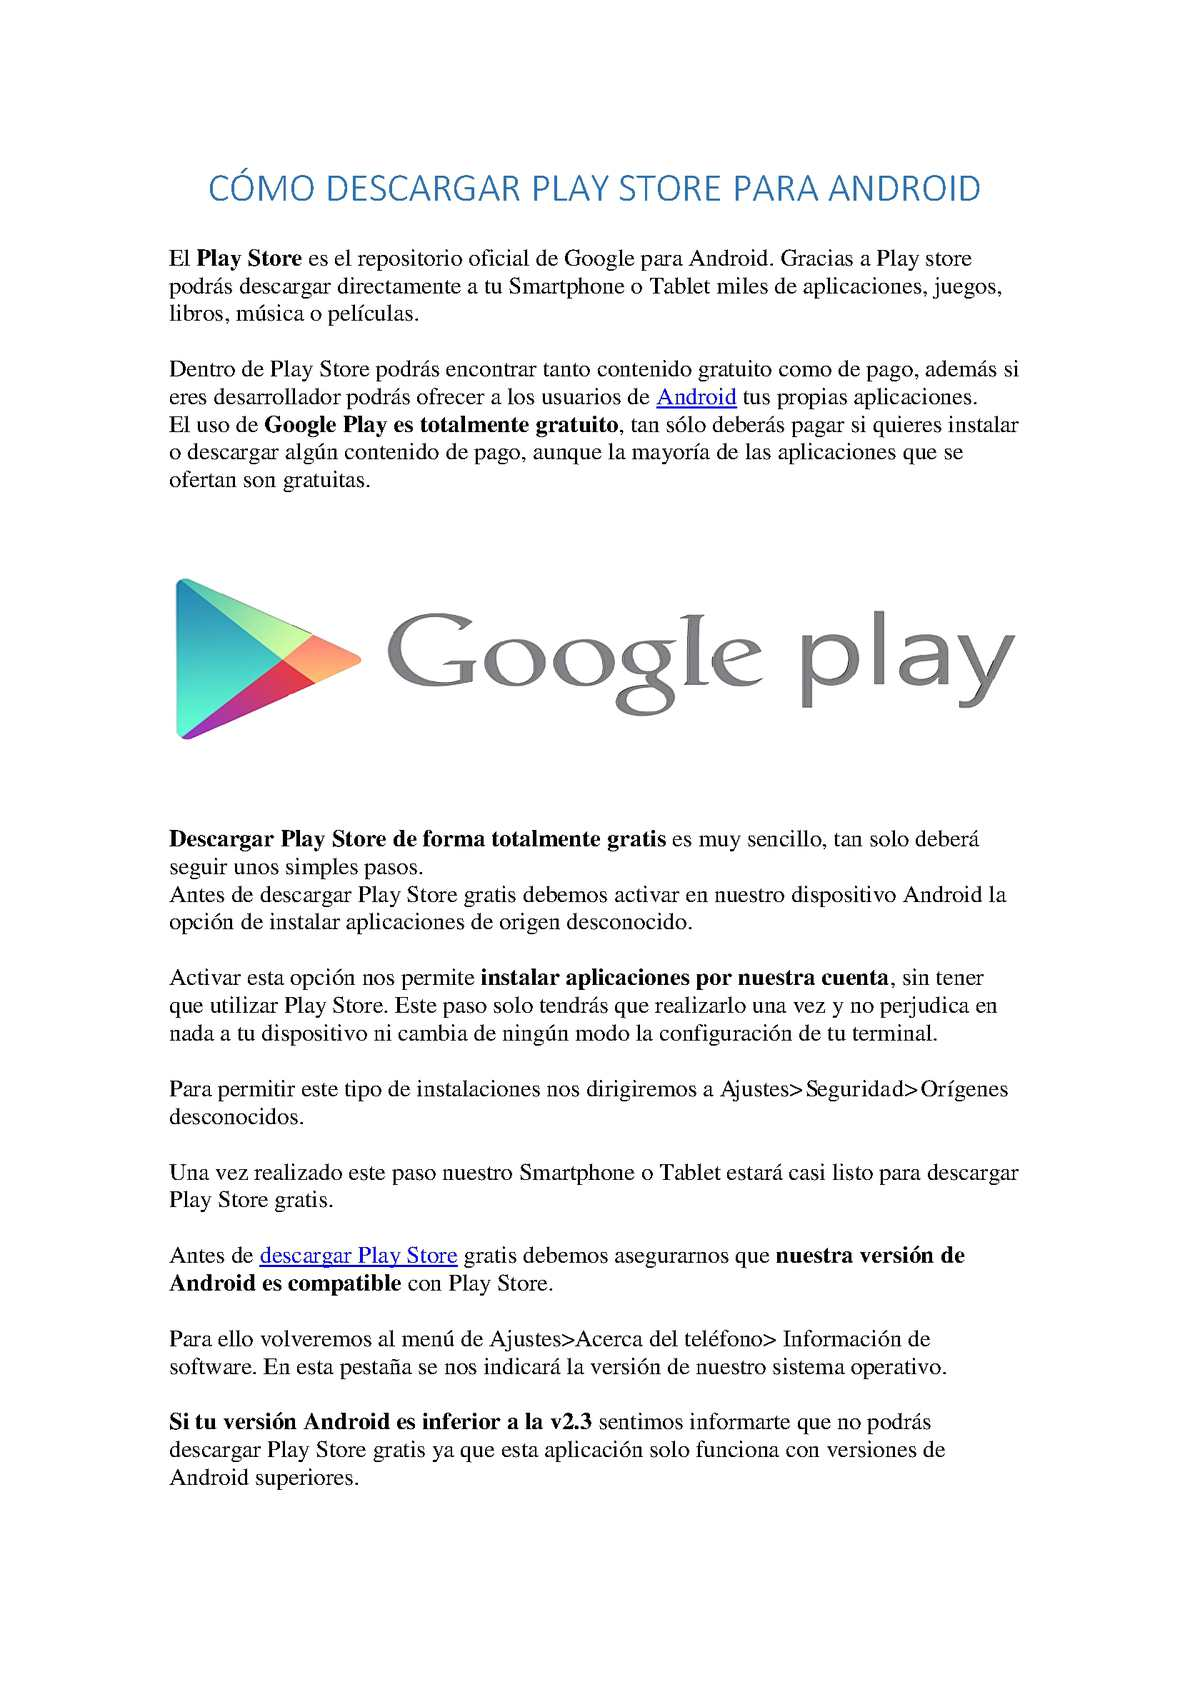 Calameo Descargar Play Store En Android